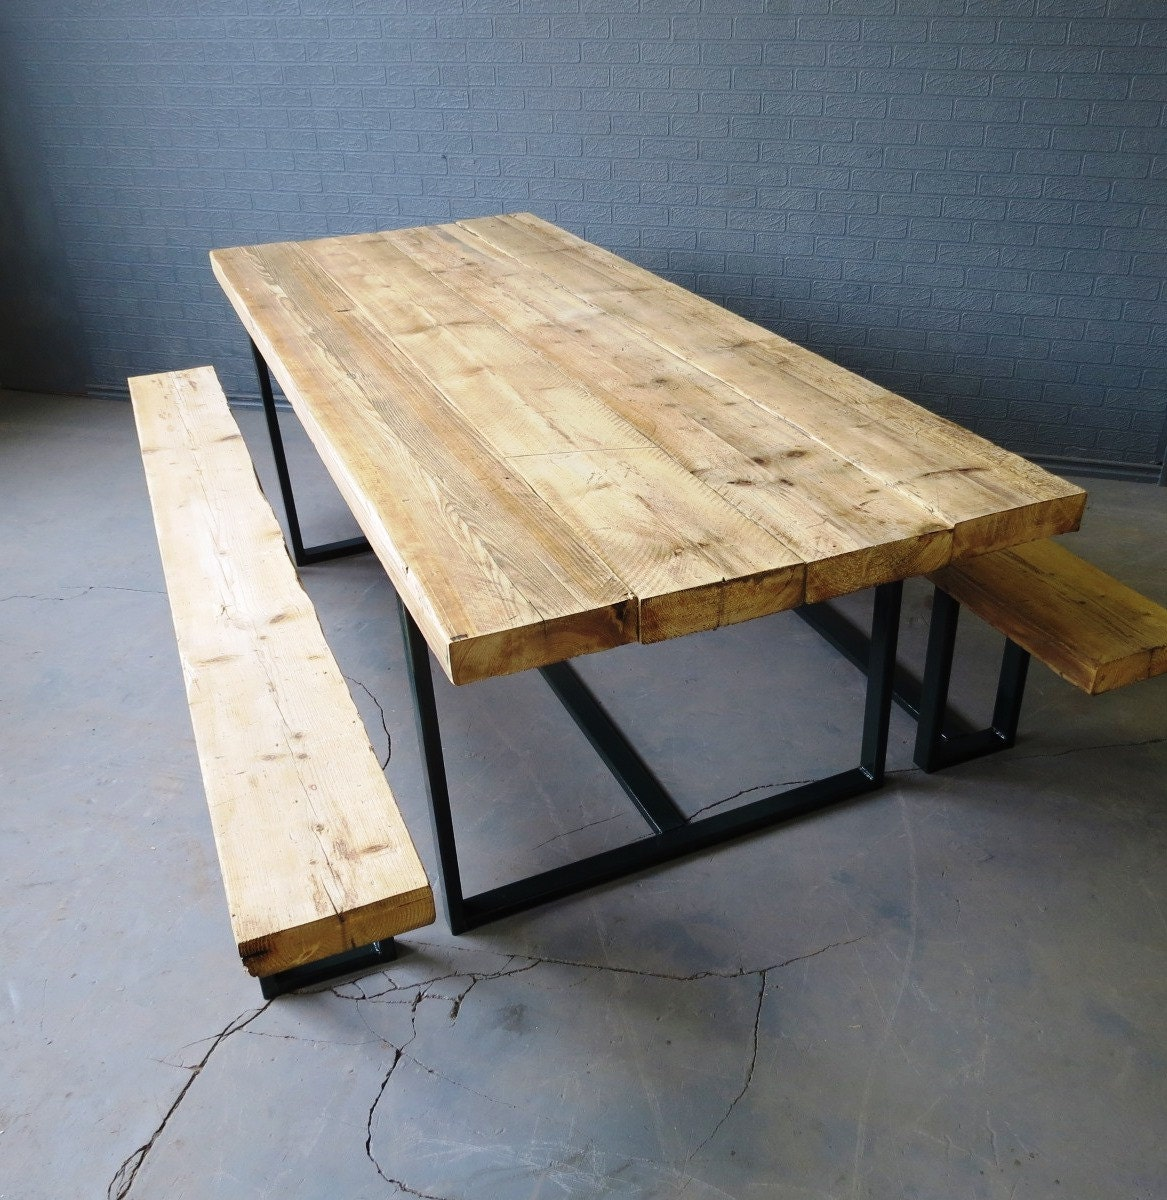 Reclaimed Industrial Chic 68 Seater Solid Wood Metal Dining